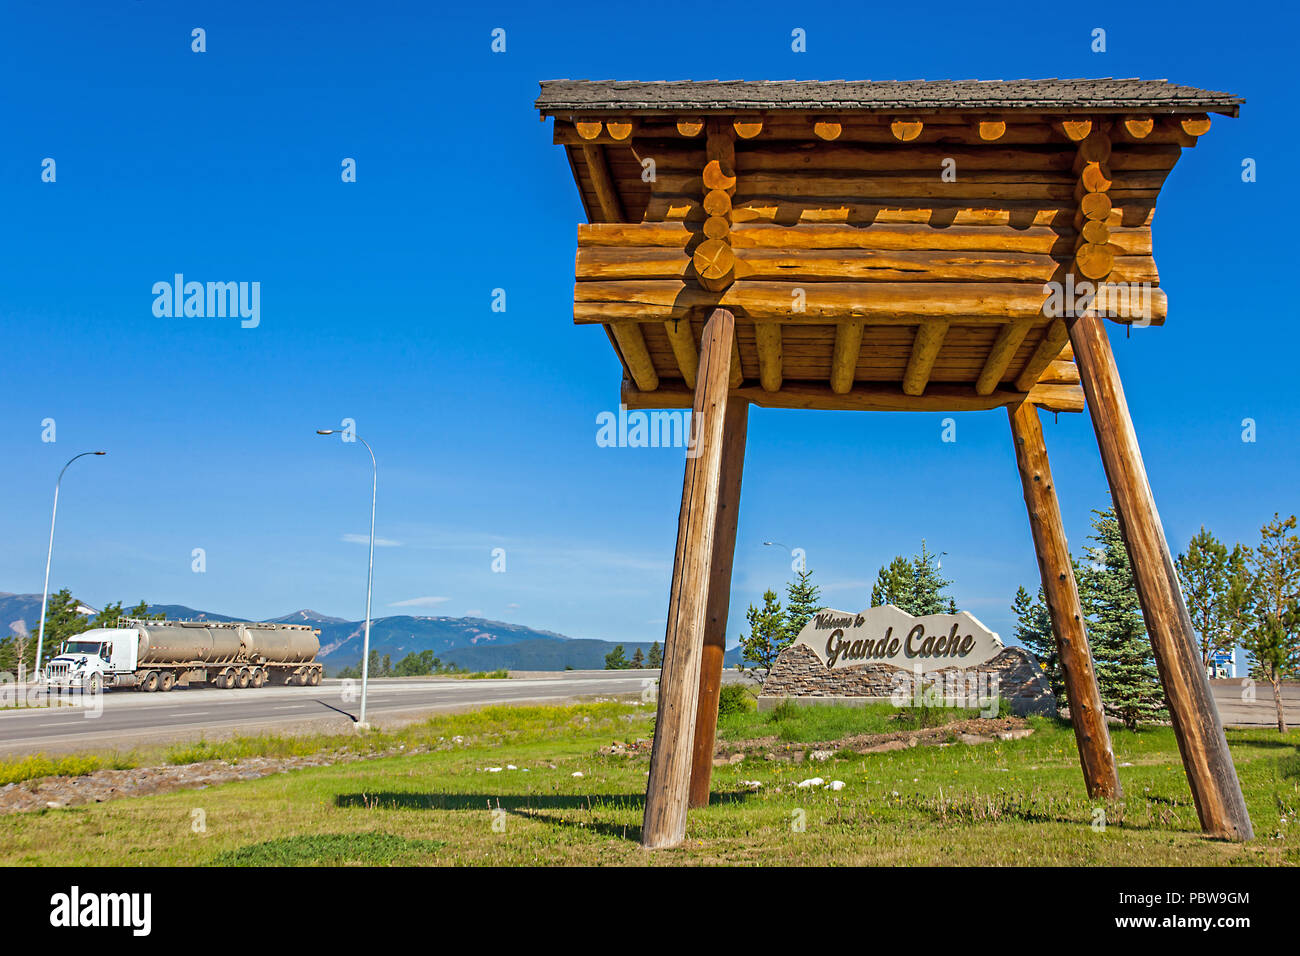 The town sign in Grande Cache Canada - Stock Image